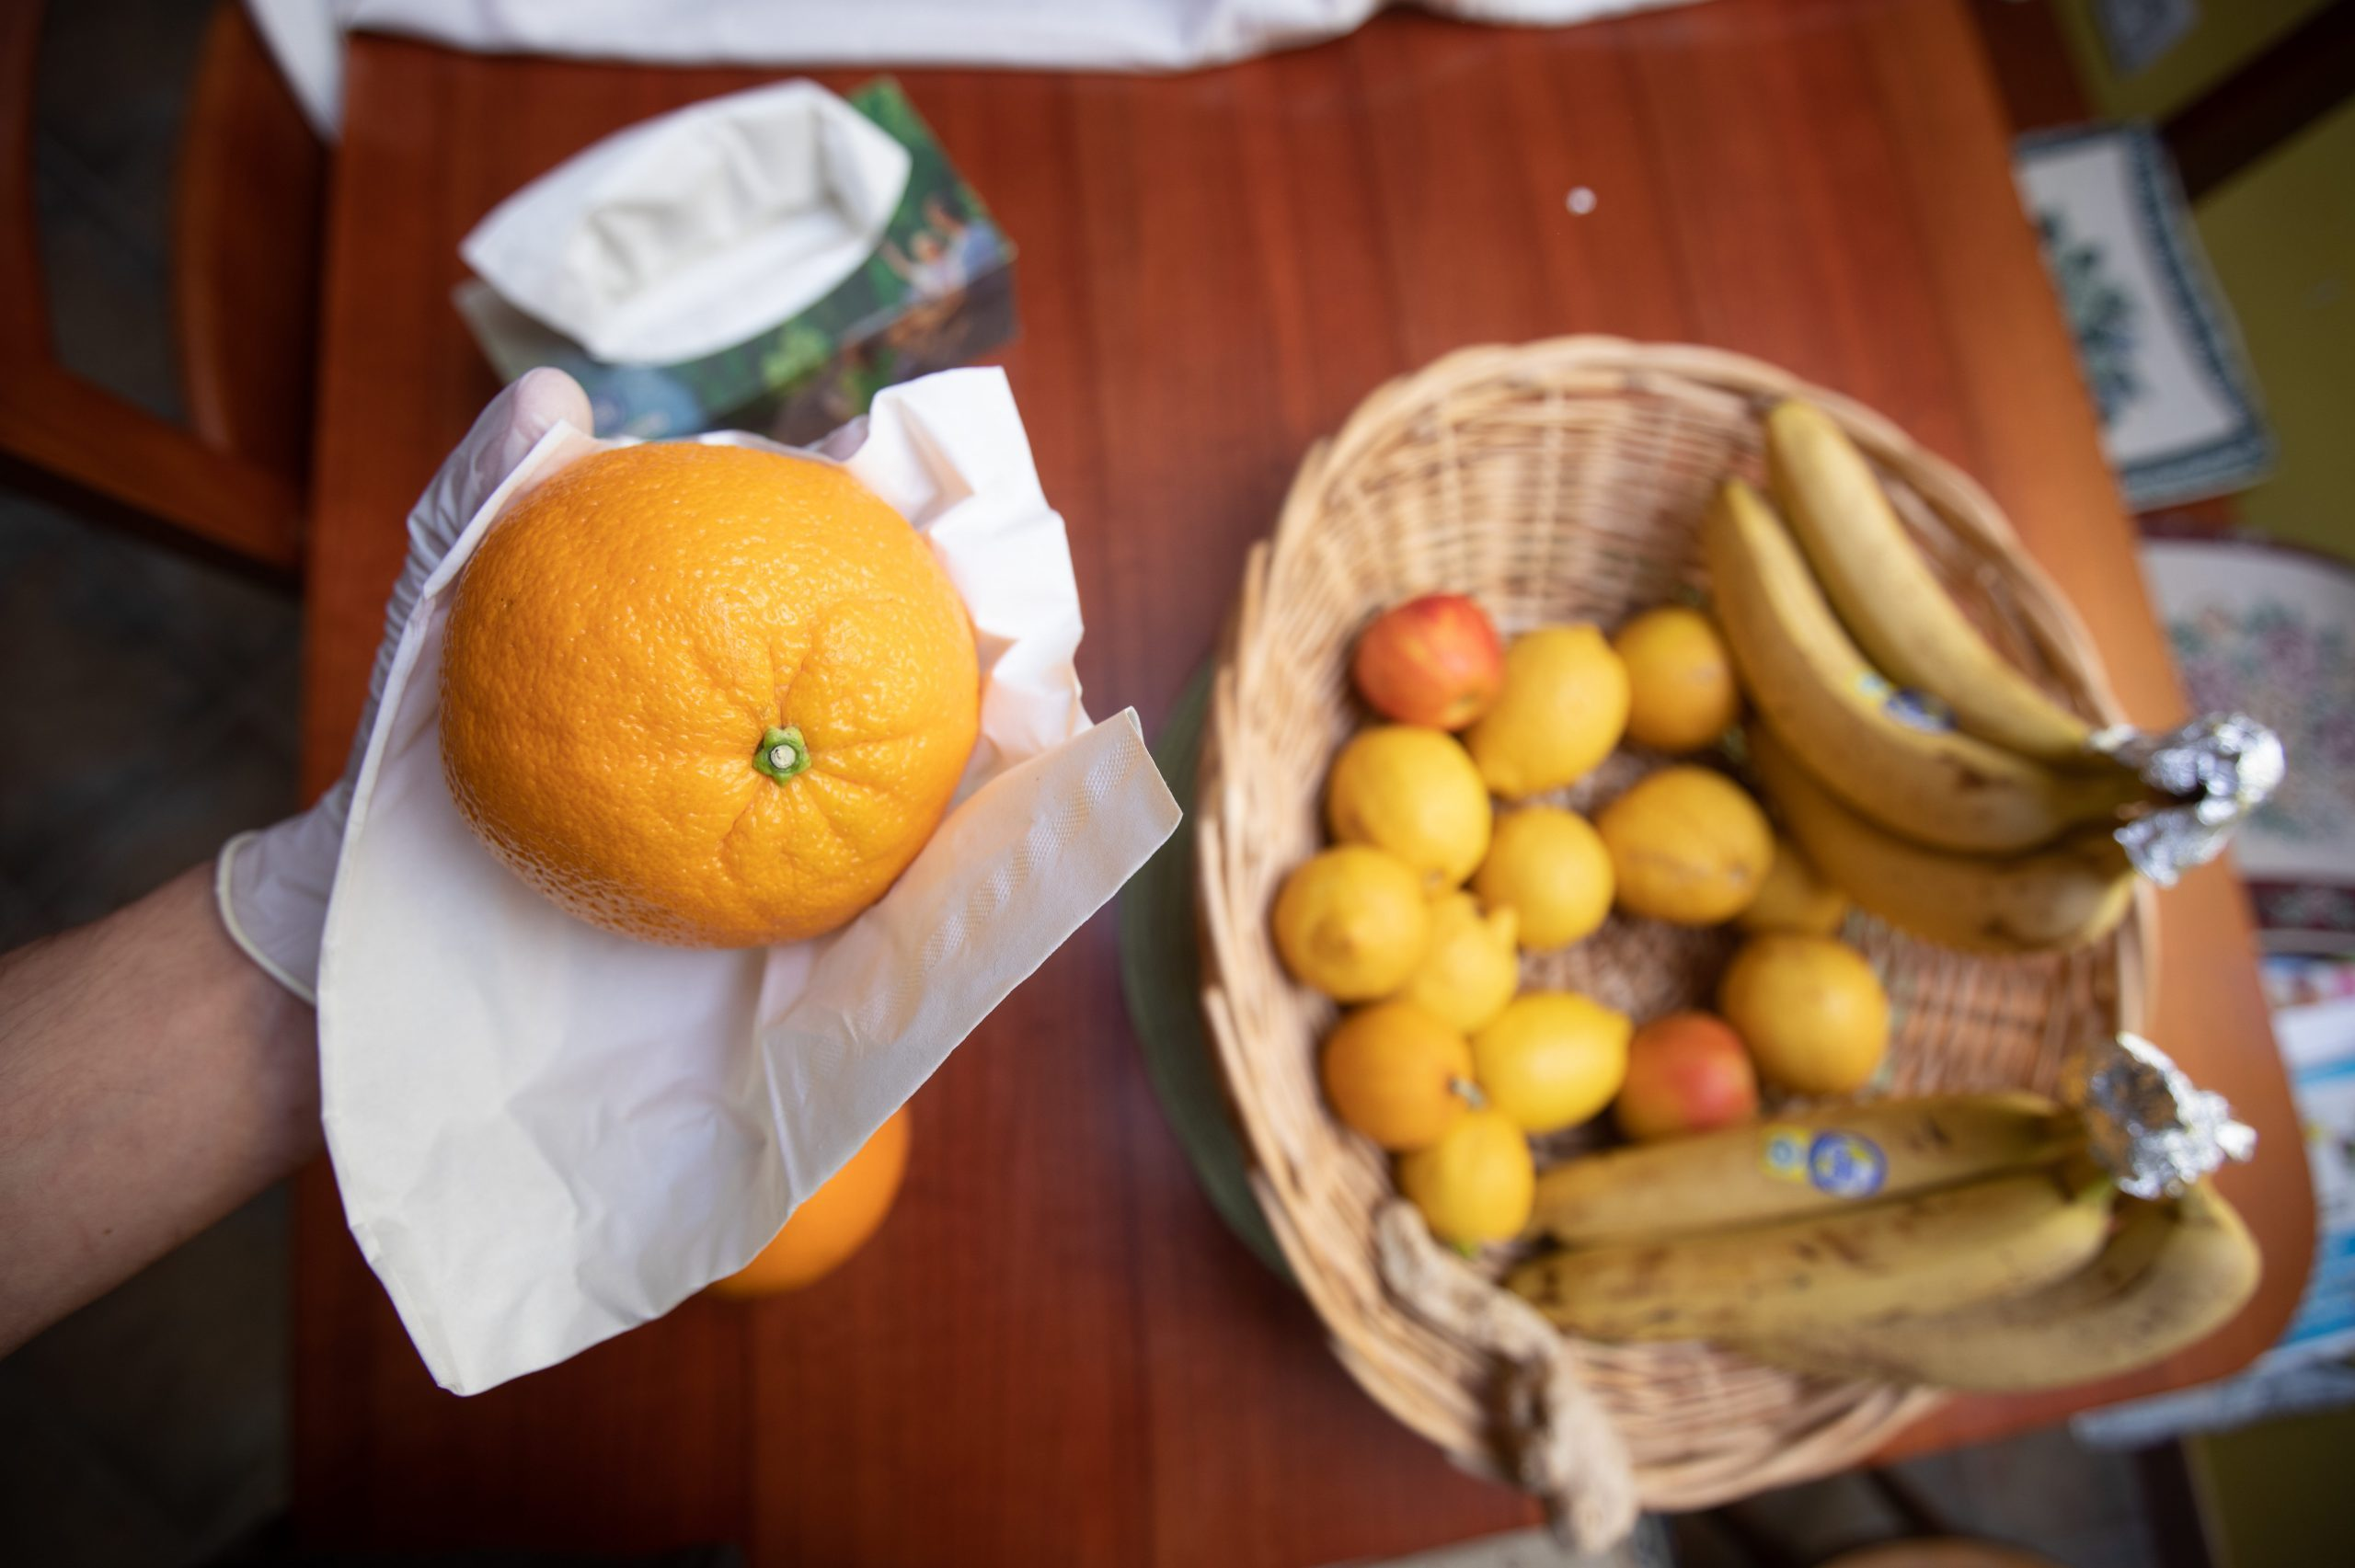 Close-up of Man Disinfecting Groceries at Home During Coronavirus Pandemic - Stock Photo